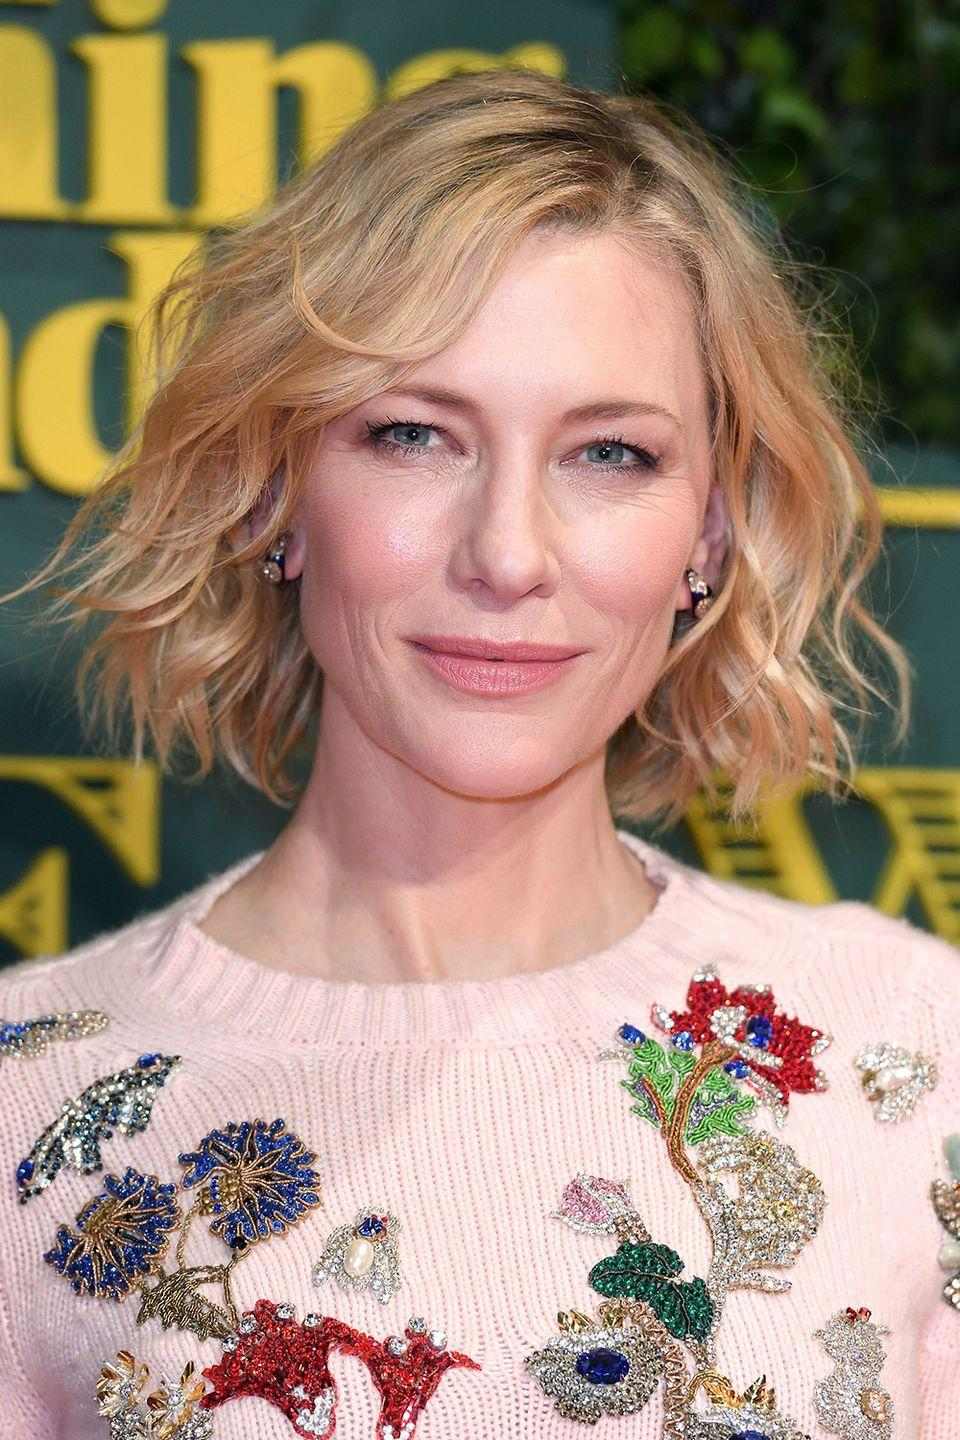 """<p>During an interview with Andrew Freund about her role in the live-action remake of <em>Cinderella, </em>Blanchett talks about her least favorite chore to do around the house—which is <a href=""""https://www.youtube.com/watch?v=_xuQzEmUi_s"""" rel=""""nofollow noopener"""" target=""""_blank"""" data-ylk=""""slk:picking up dog poop"""" class=""""link rapid-noclick-resp"""">picking up dog poop</a>. After complaining about picking up """"tons of dog poop"""" for two minutes (and saying the word """"poop"""" at least 10 times), she remembers they are talking about the movie.</p><p>""""<em>Cinderella, </em>we're talking about <em>Cinderella. </em>There's no dog poop in that fucking story,"""" she says through her teeth. Clearly, this is her least favorite chore.</p>"""